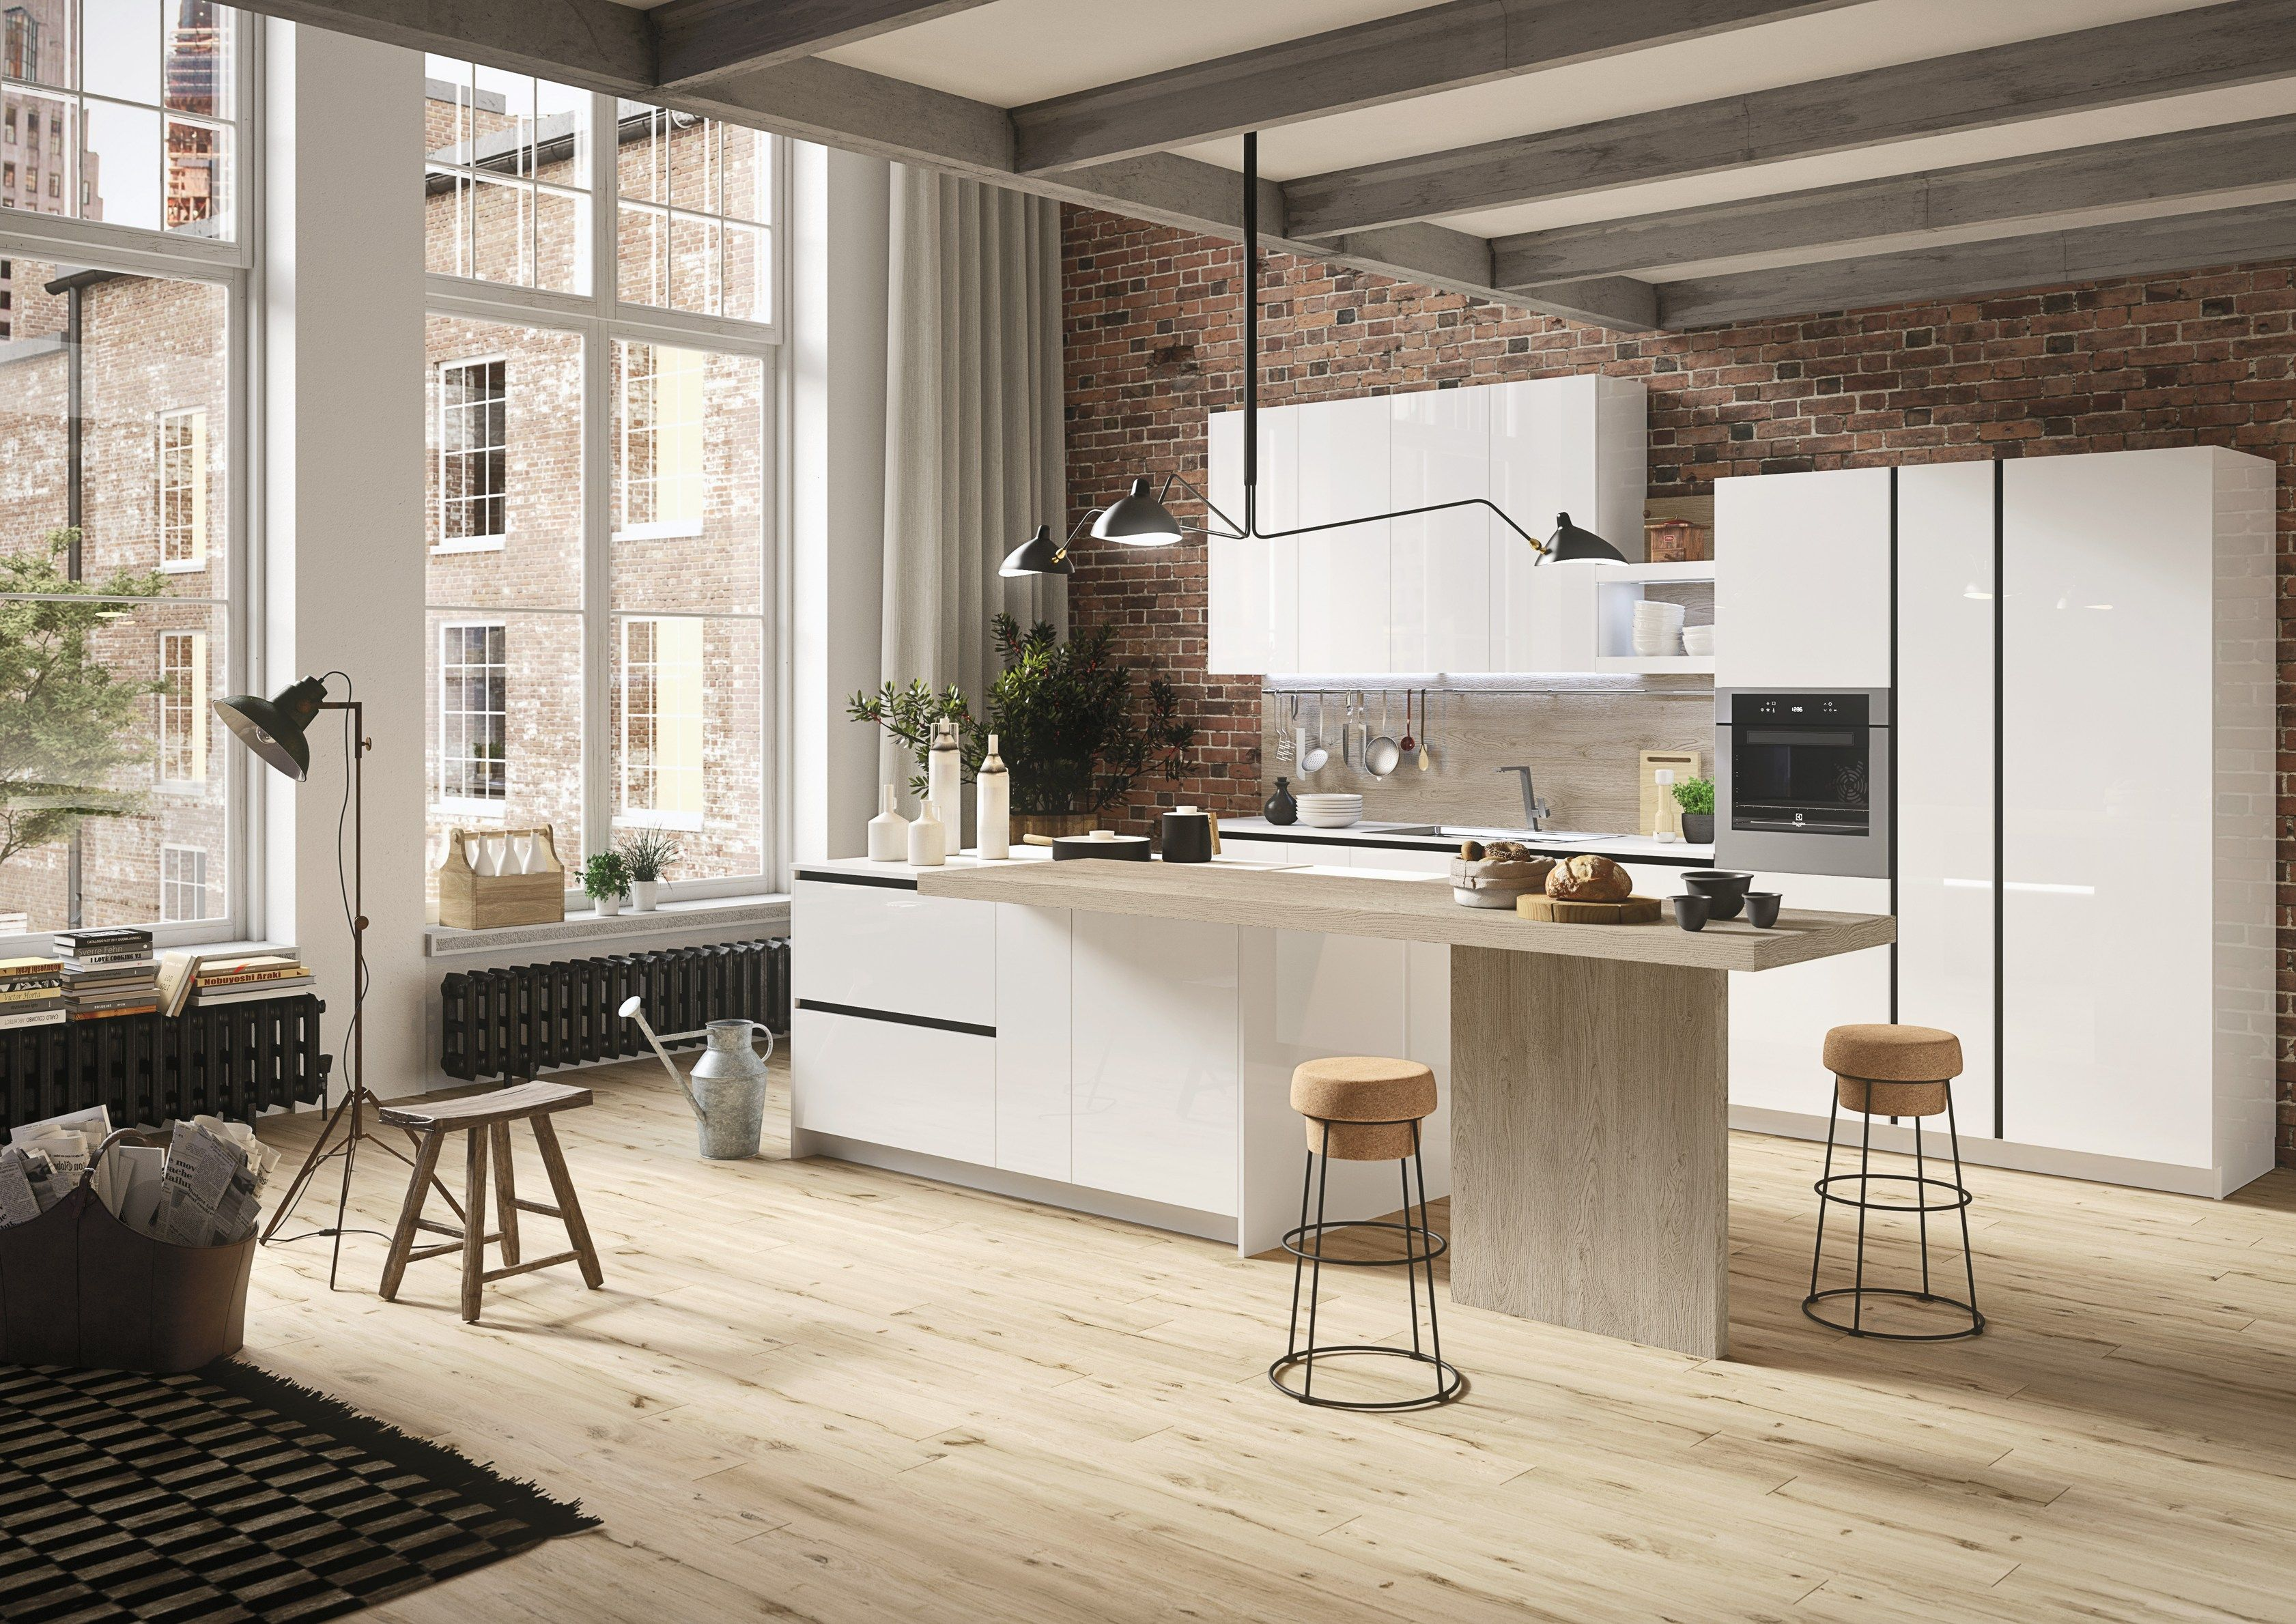 FIRST-Contemporary-style-kitchen-Snaidero-239595-rel4339d8cc.jpg ...